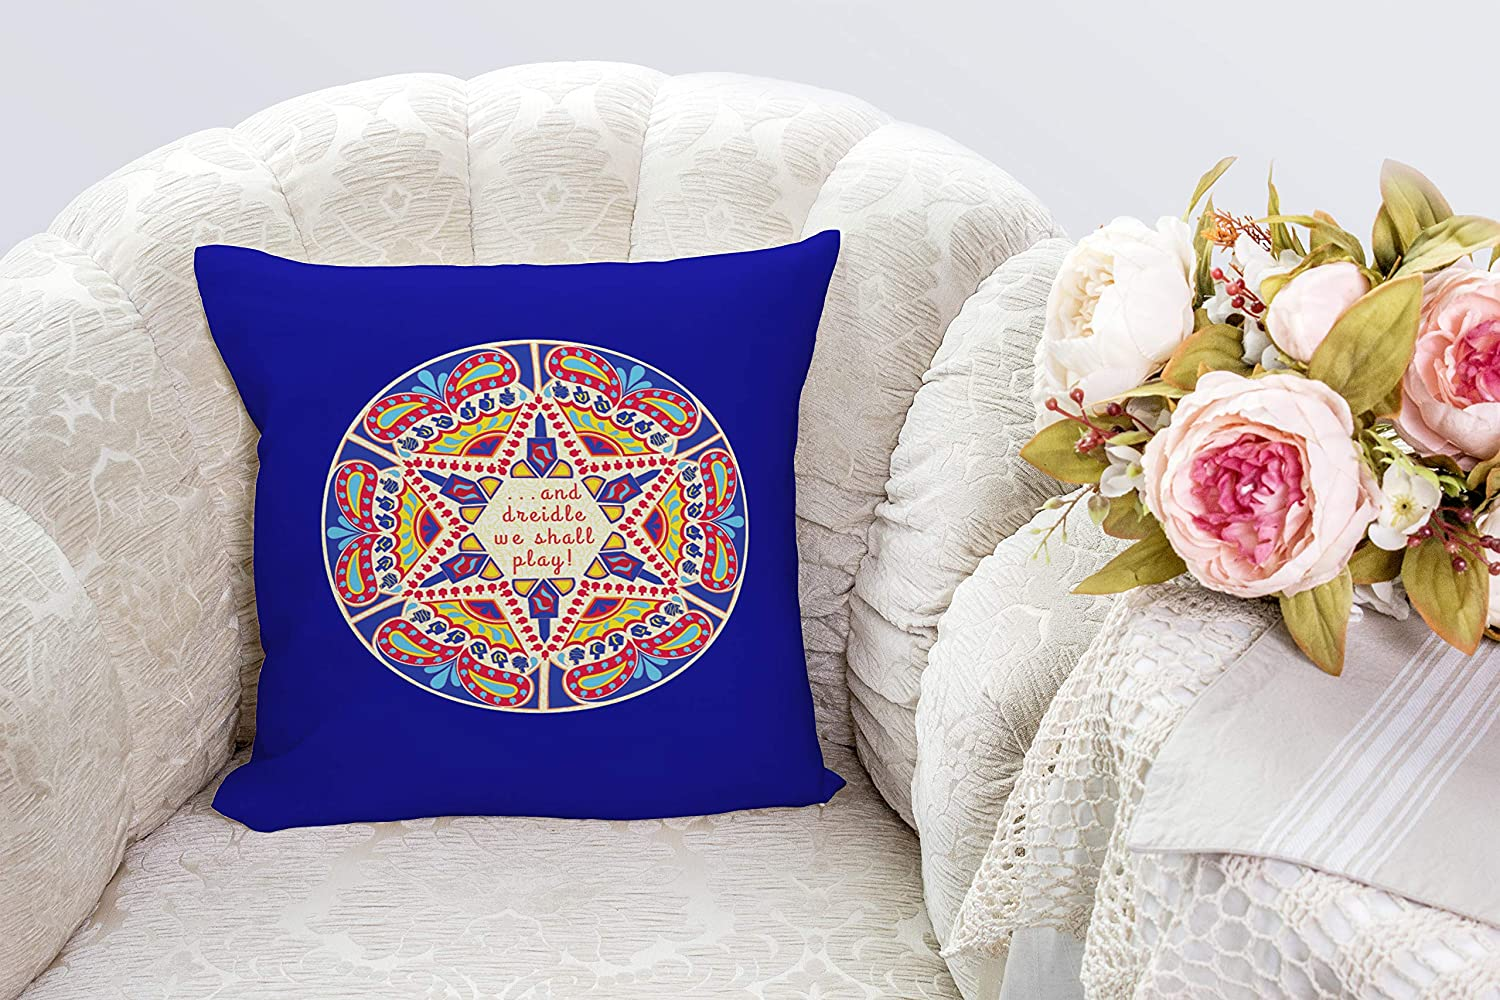 Darkchocl Daily Decoration Throw Pillow Covers Hanukkah Chanukah Paisley Dreidle Square Pillowcase Cushion for Couch Sofa or Bed Modern Quality Design Cotton and Polyester 18 x 18